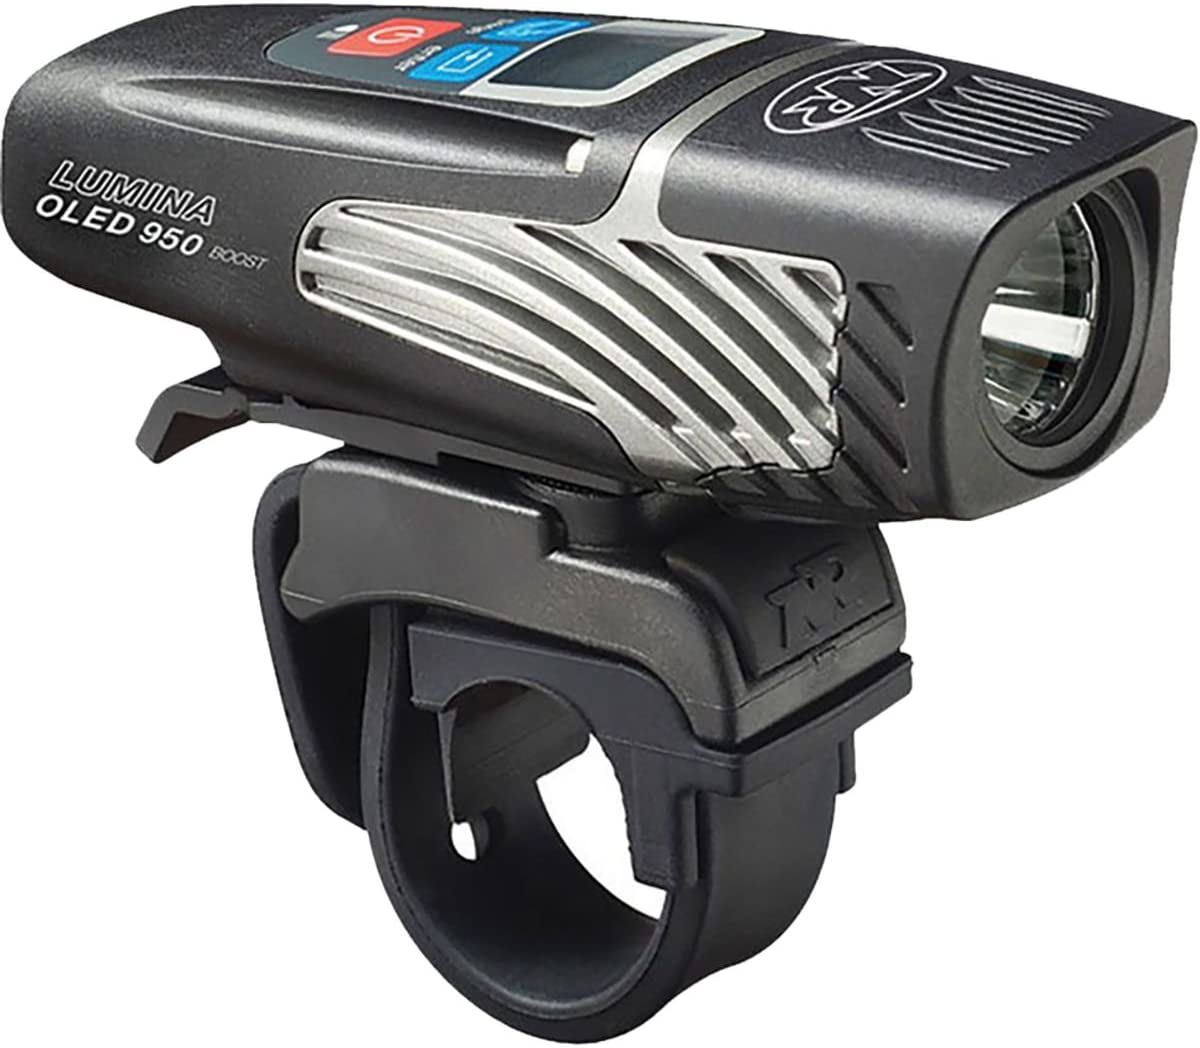 NiteRider Lumina 950 OLED Boost Solas 100 Combo Bike Light